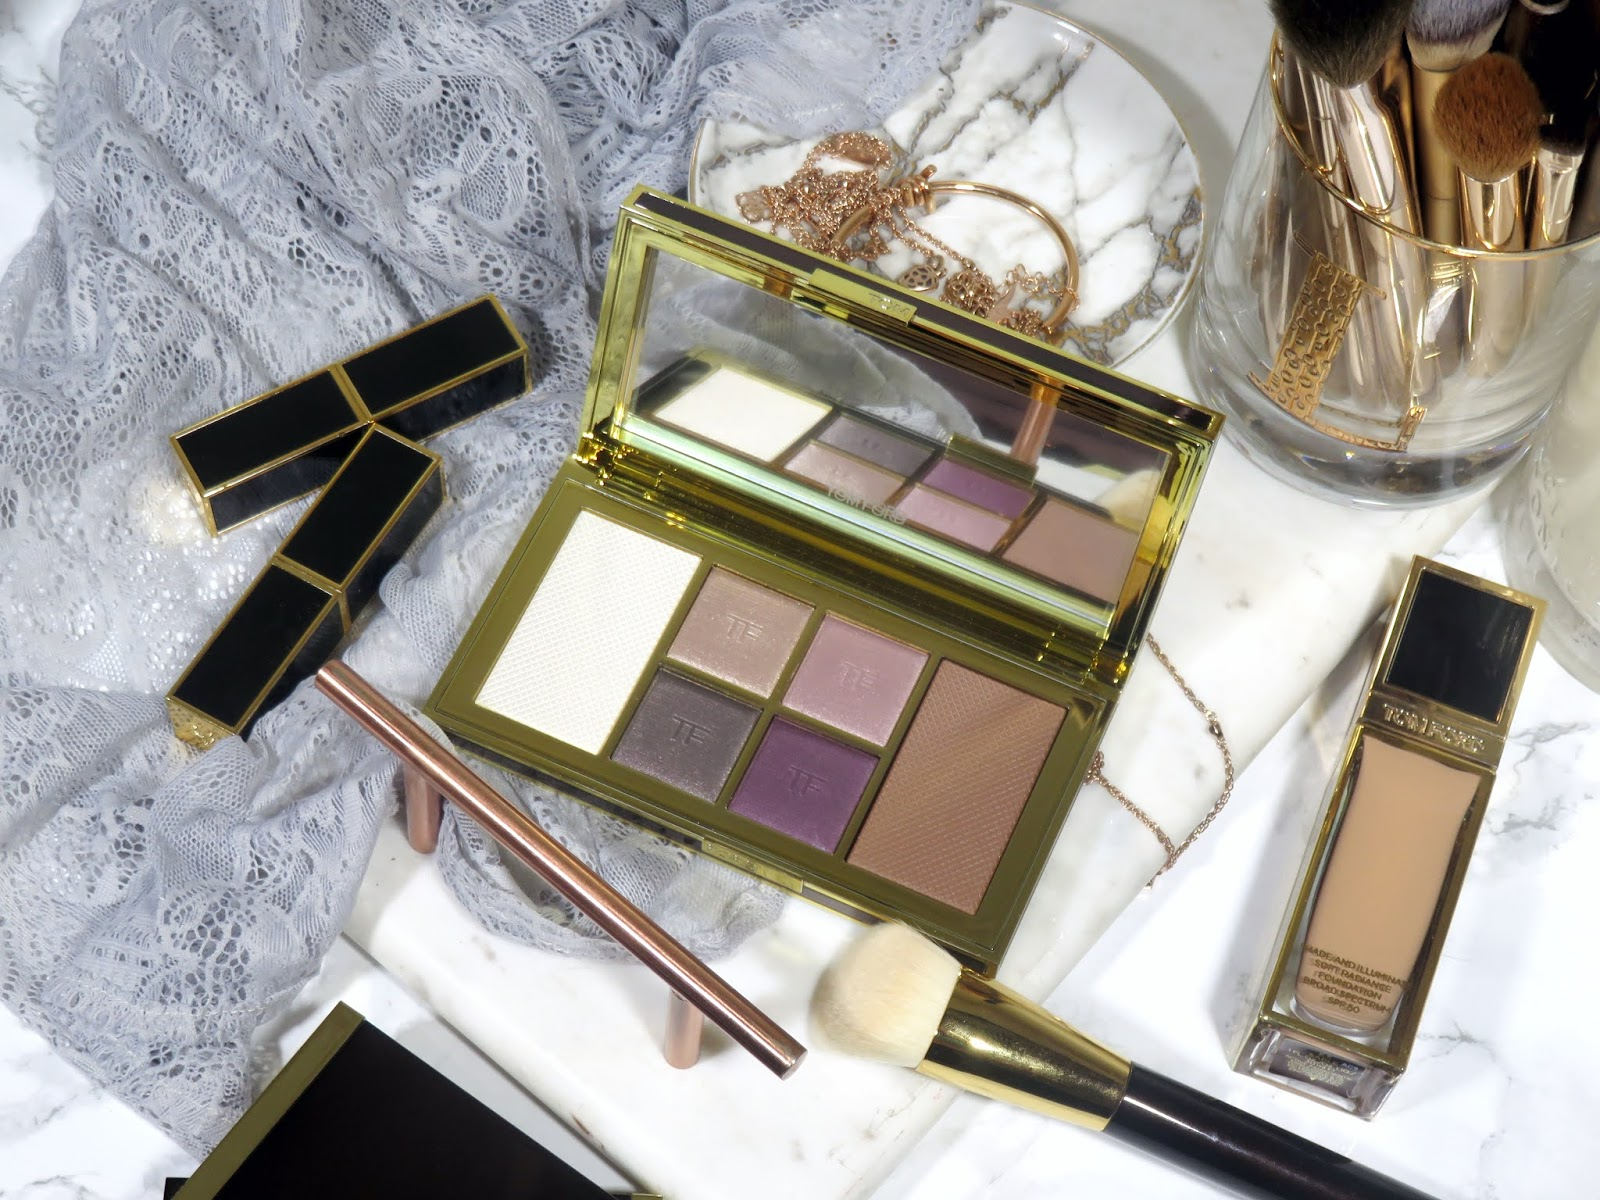 Tom Ford Shade and Illuminate Face & Eye Palette in Moonlit Violet Review and Swatches